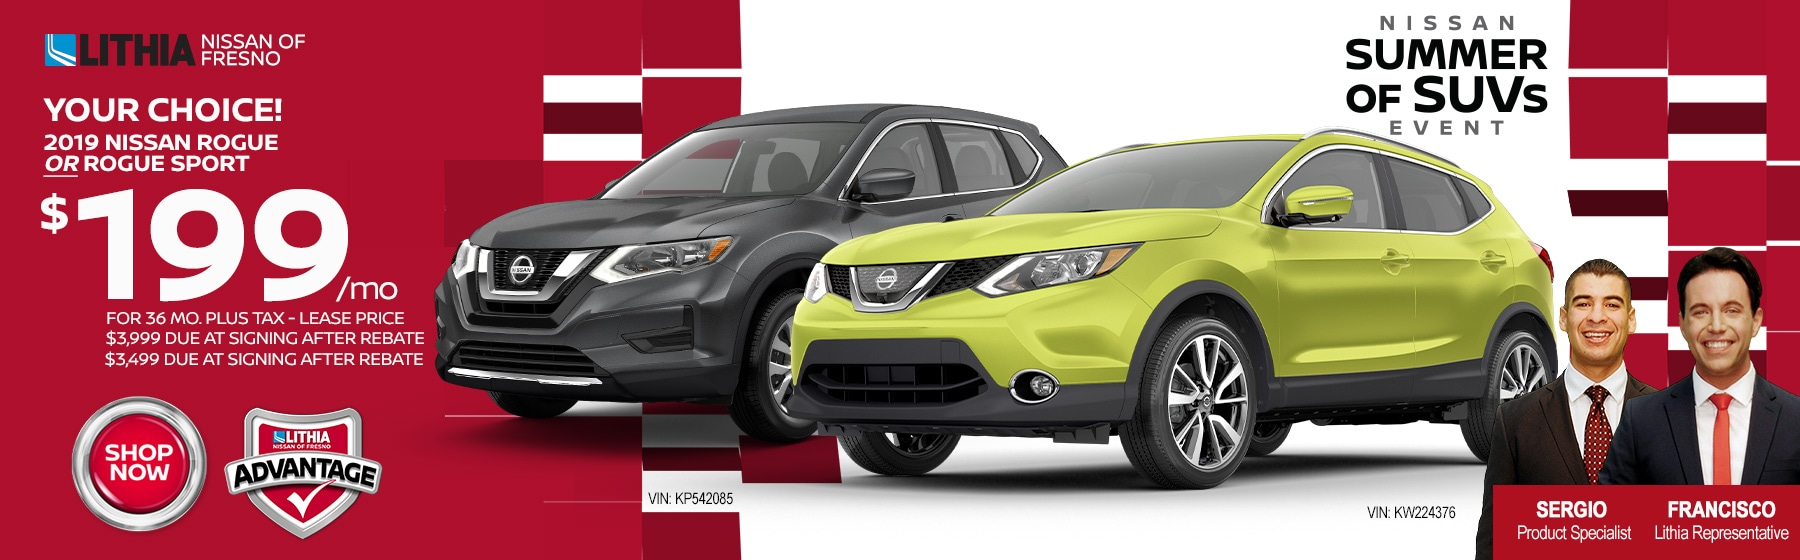 Lithia Nissan Of Fresno >> New & Used Car Dealership in Fresno, CA | Lithia Nissan of ...